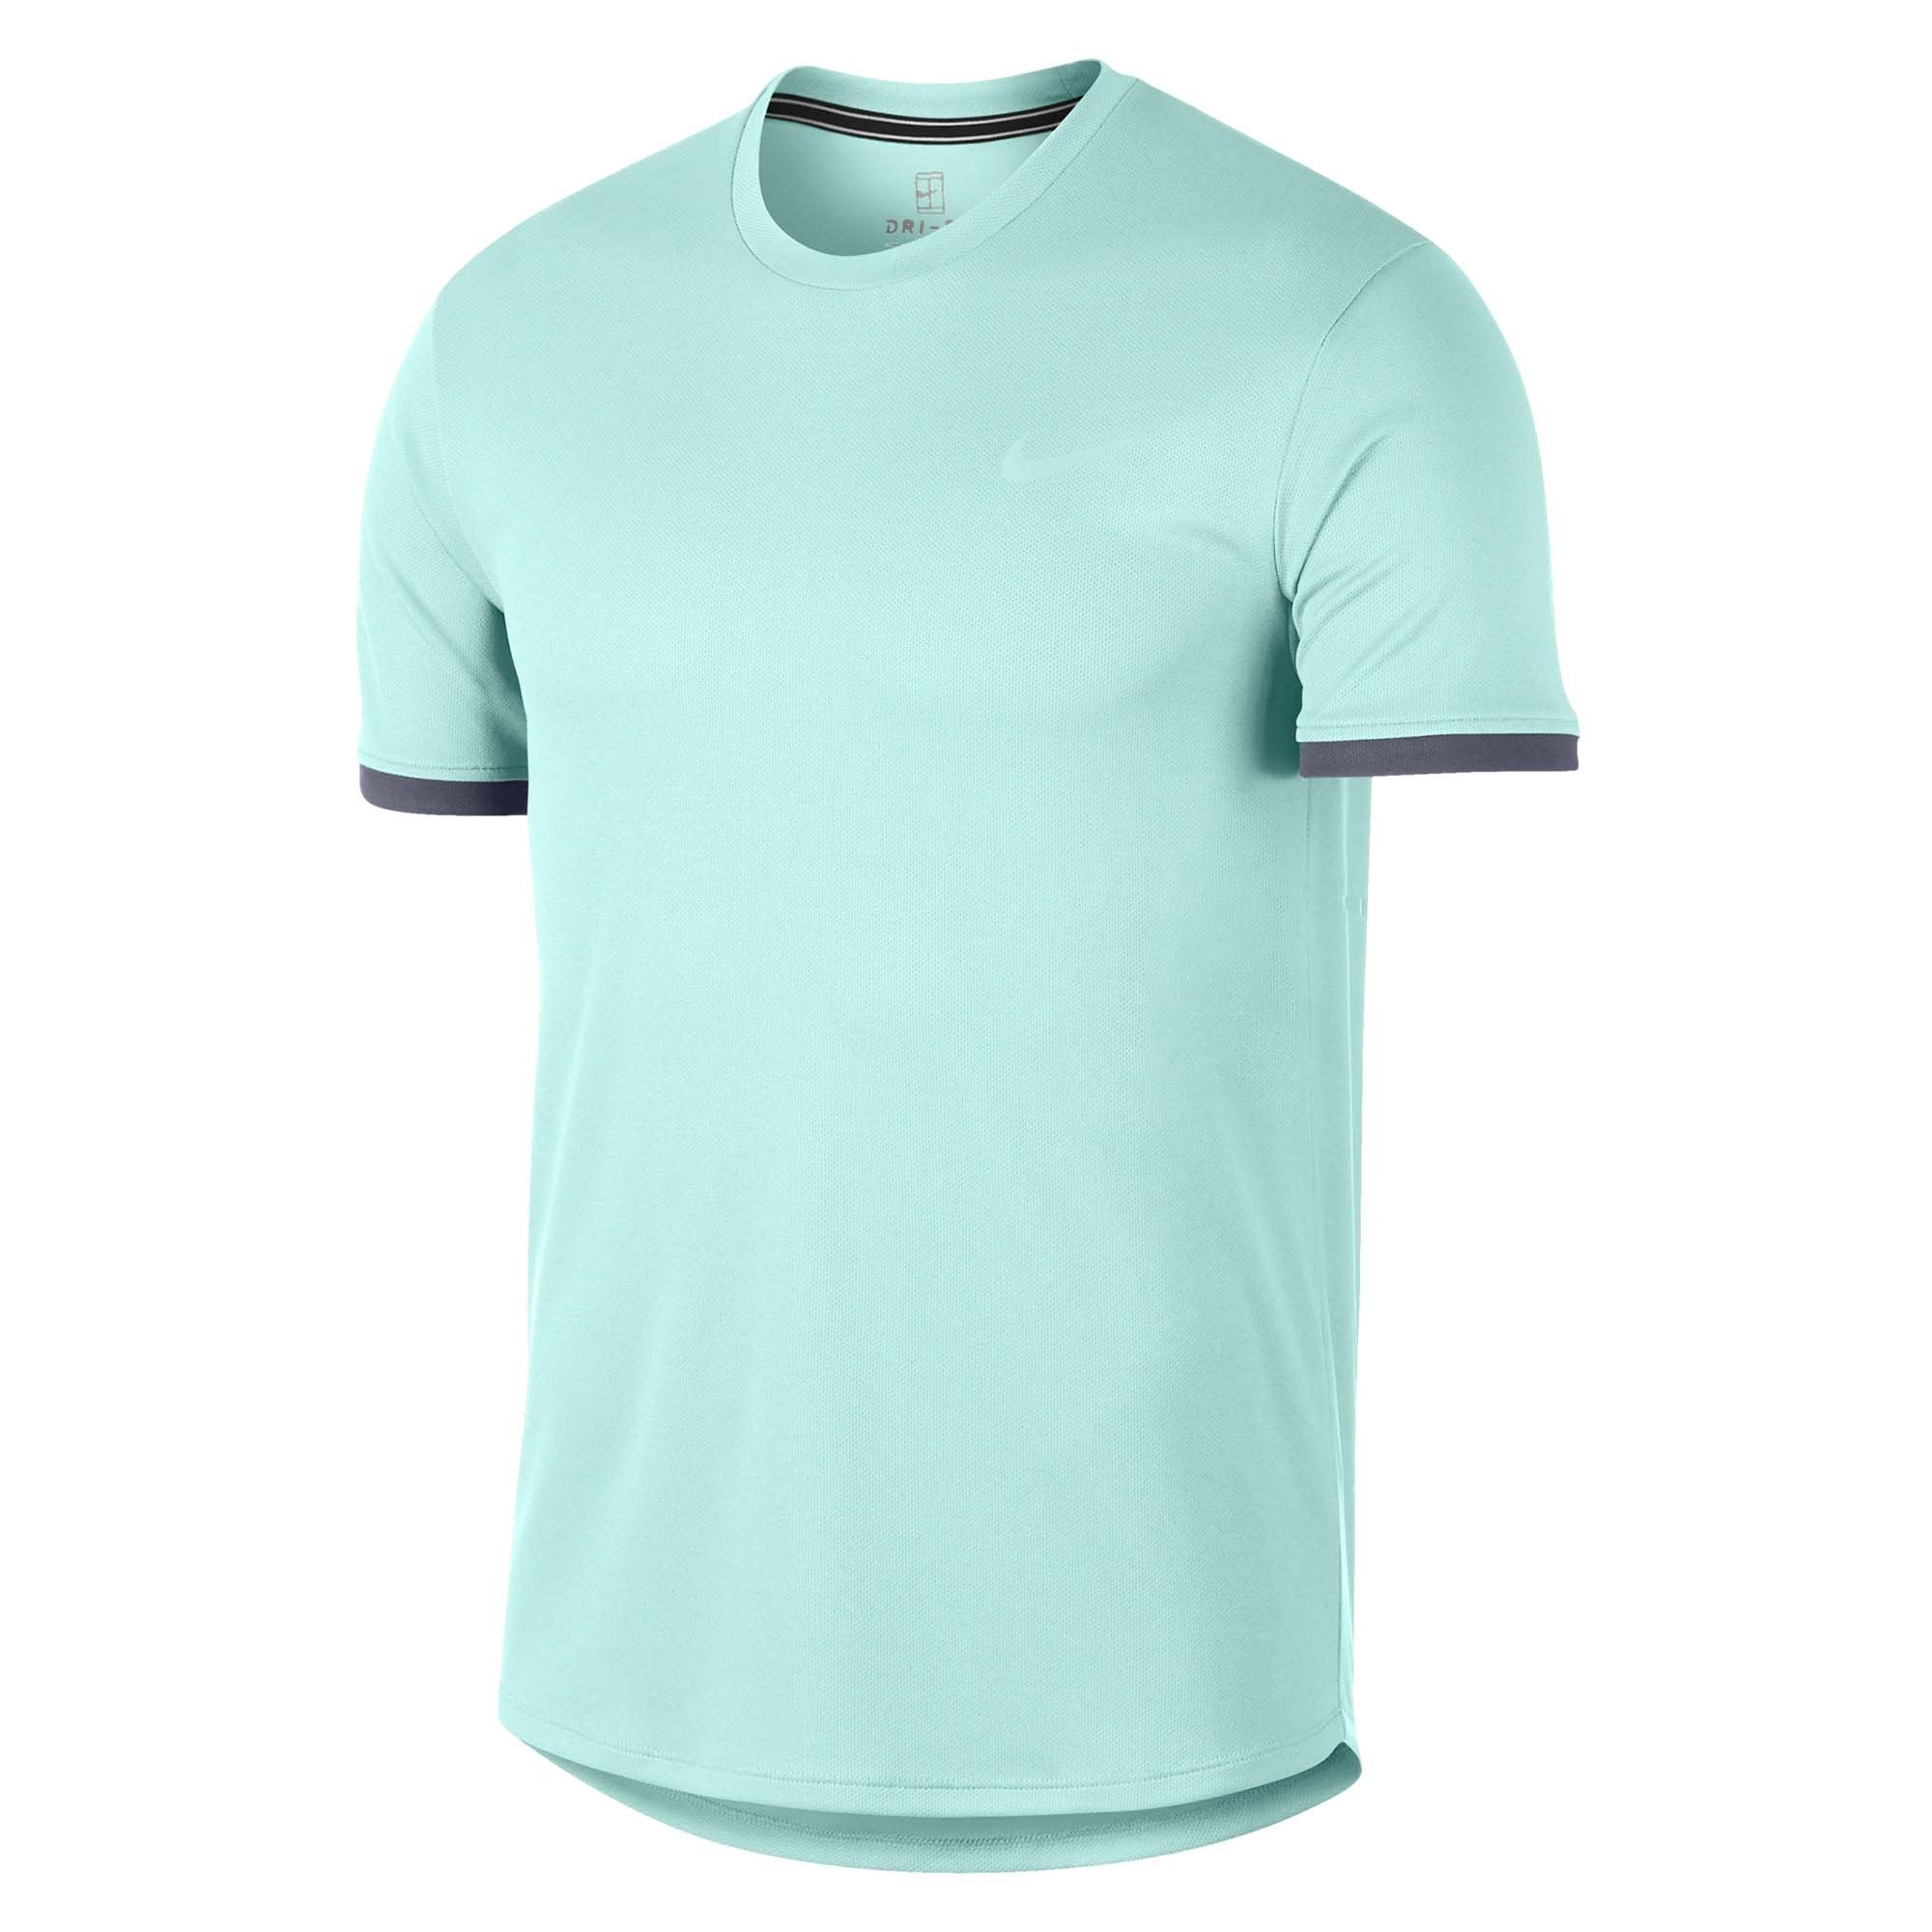 f934679c8 Buy Nike Men Court Dry-Fit Shortsleeve Top Online in Singapore | Royal  Sporting House